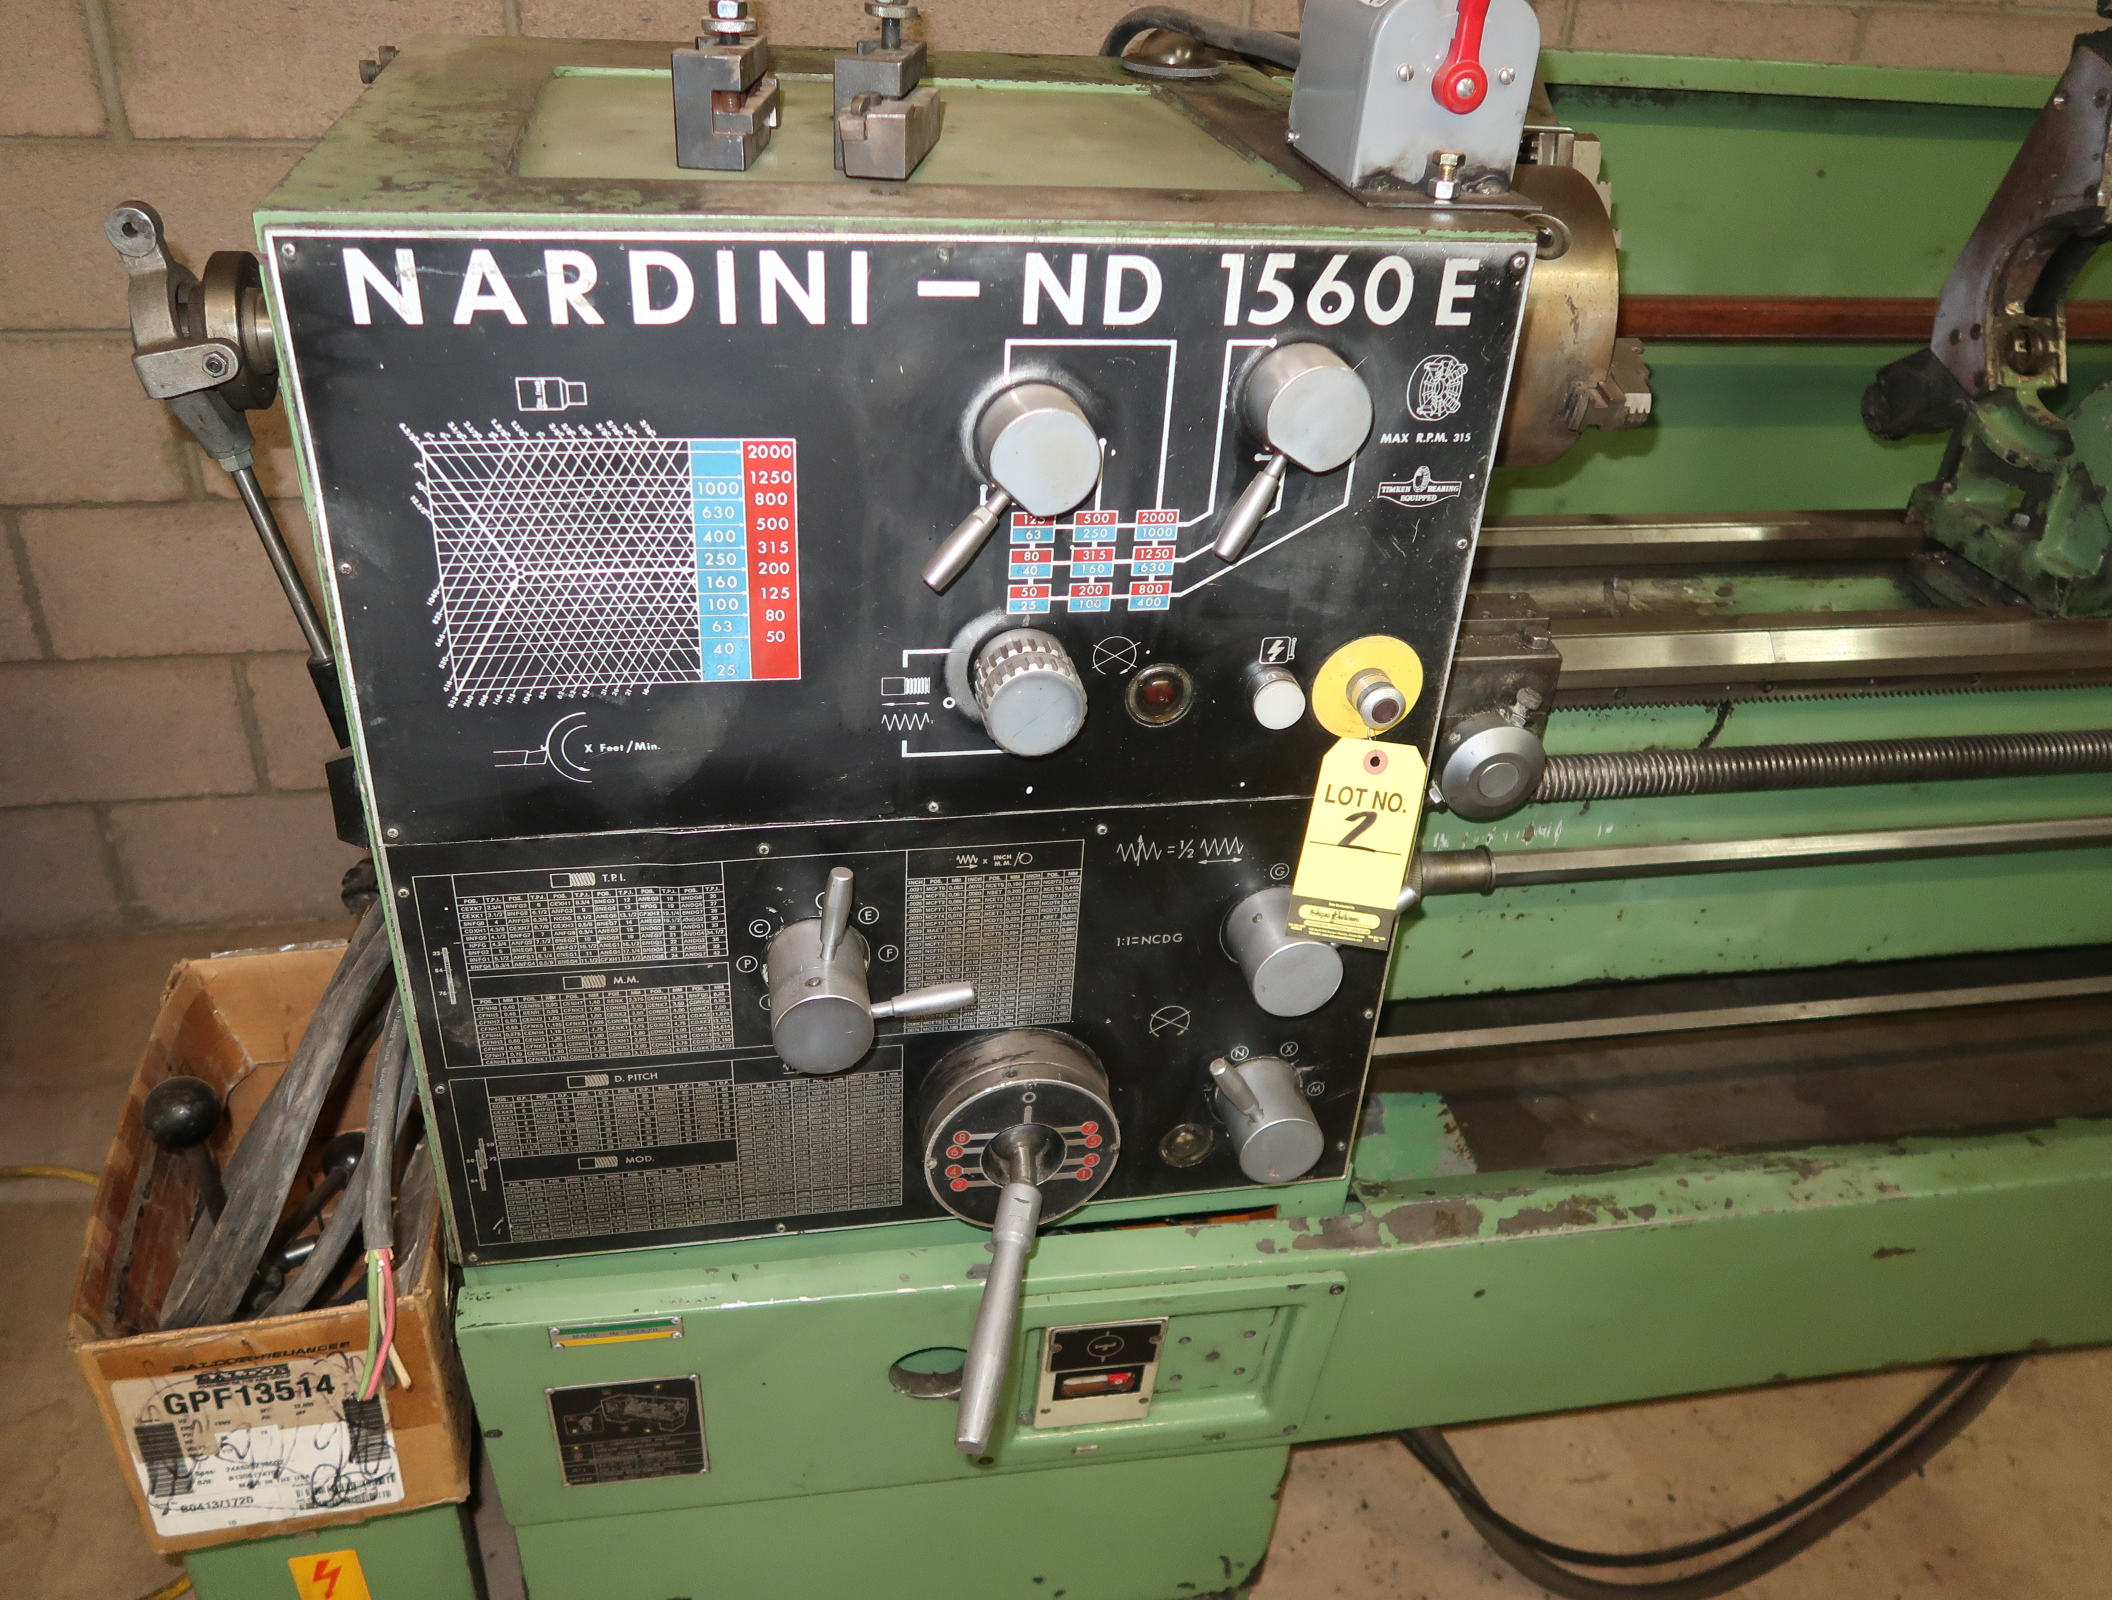 NARDINI-ND 1560E GAP BED ENGINE LATHE W/3-JAW CHUCK, QUICK CHANGE TOOLPOST W/3-HOLDERS, 5C COLLET - Image 4 of 6